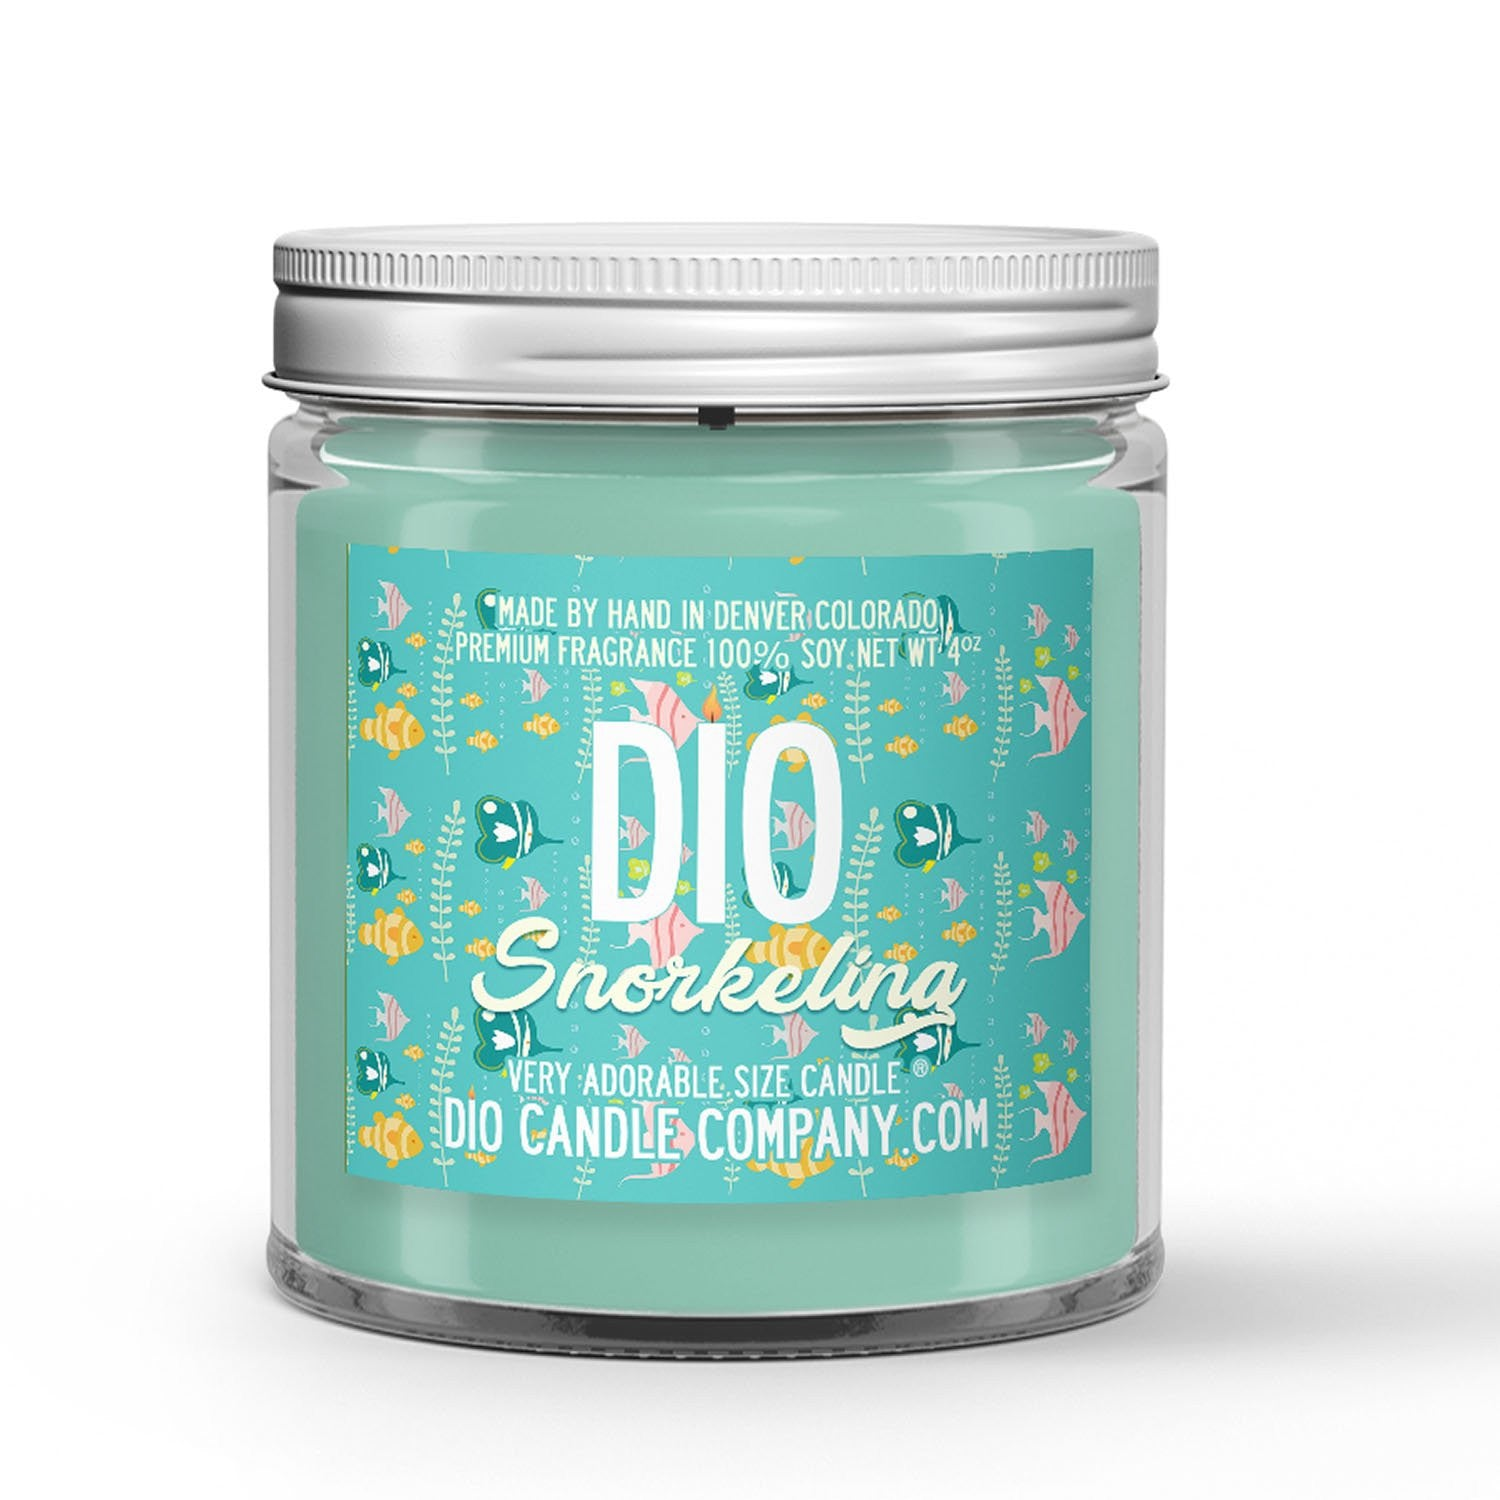 Snorkeling Candle Sunscreen - Ocean Waves Scented - Dio Candle Company